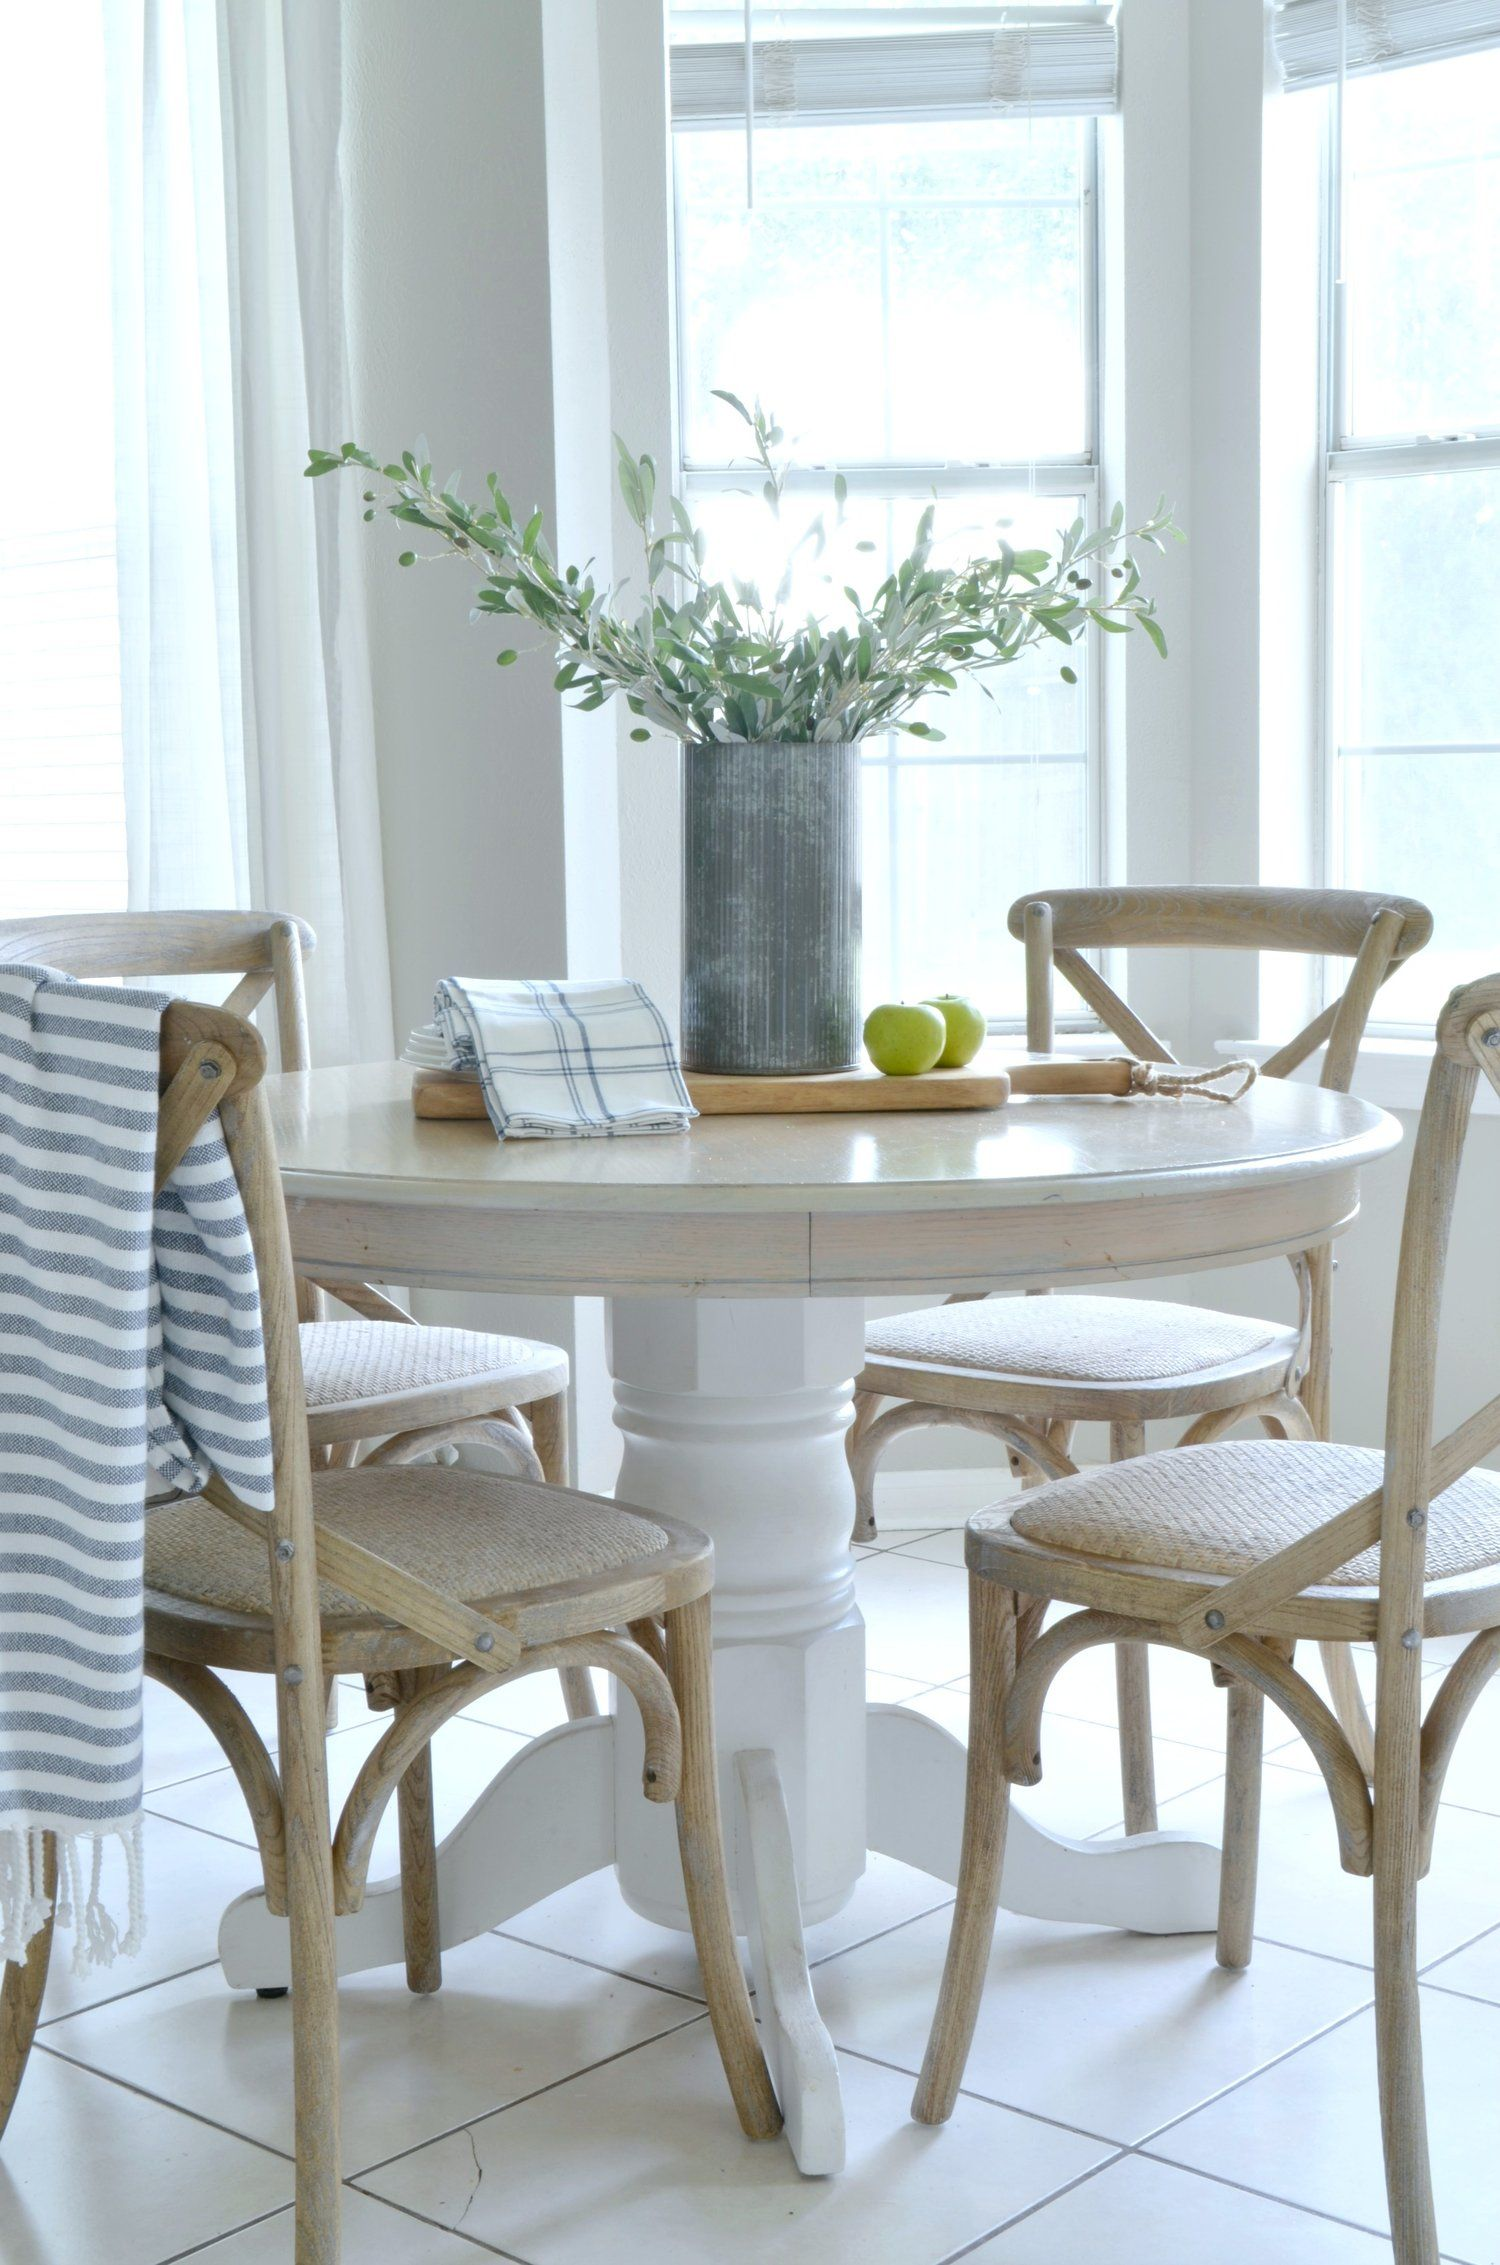 Farmhousestyle dining chairs give the breakfast nook an